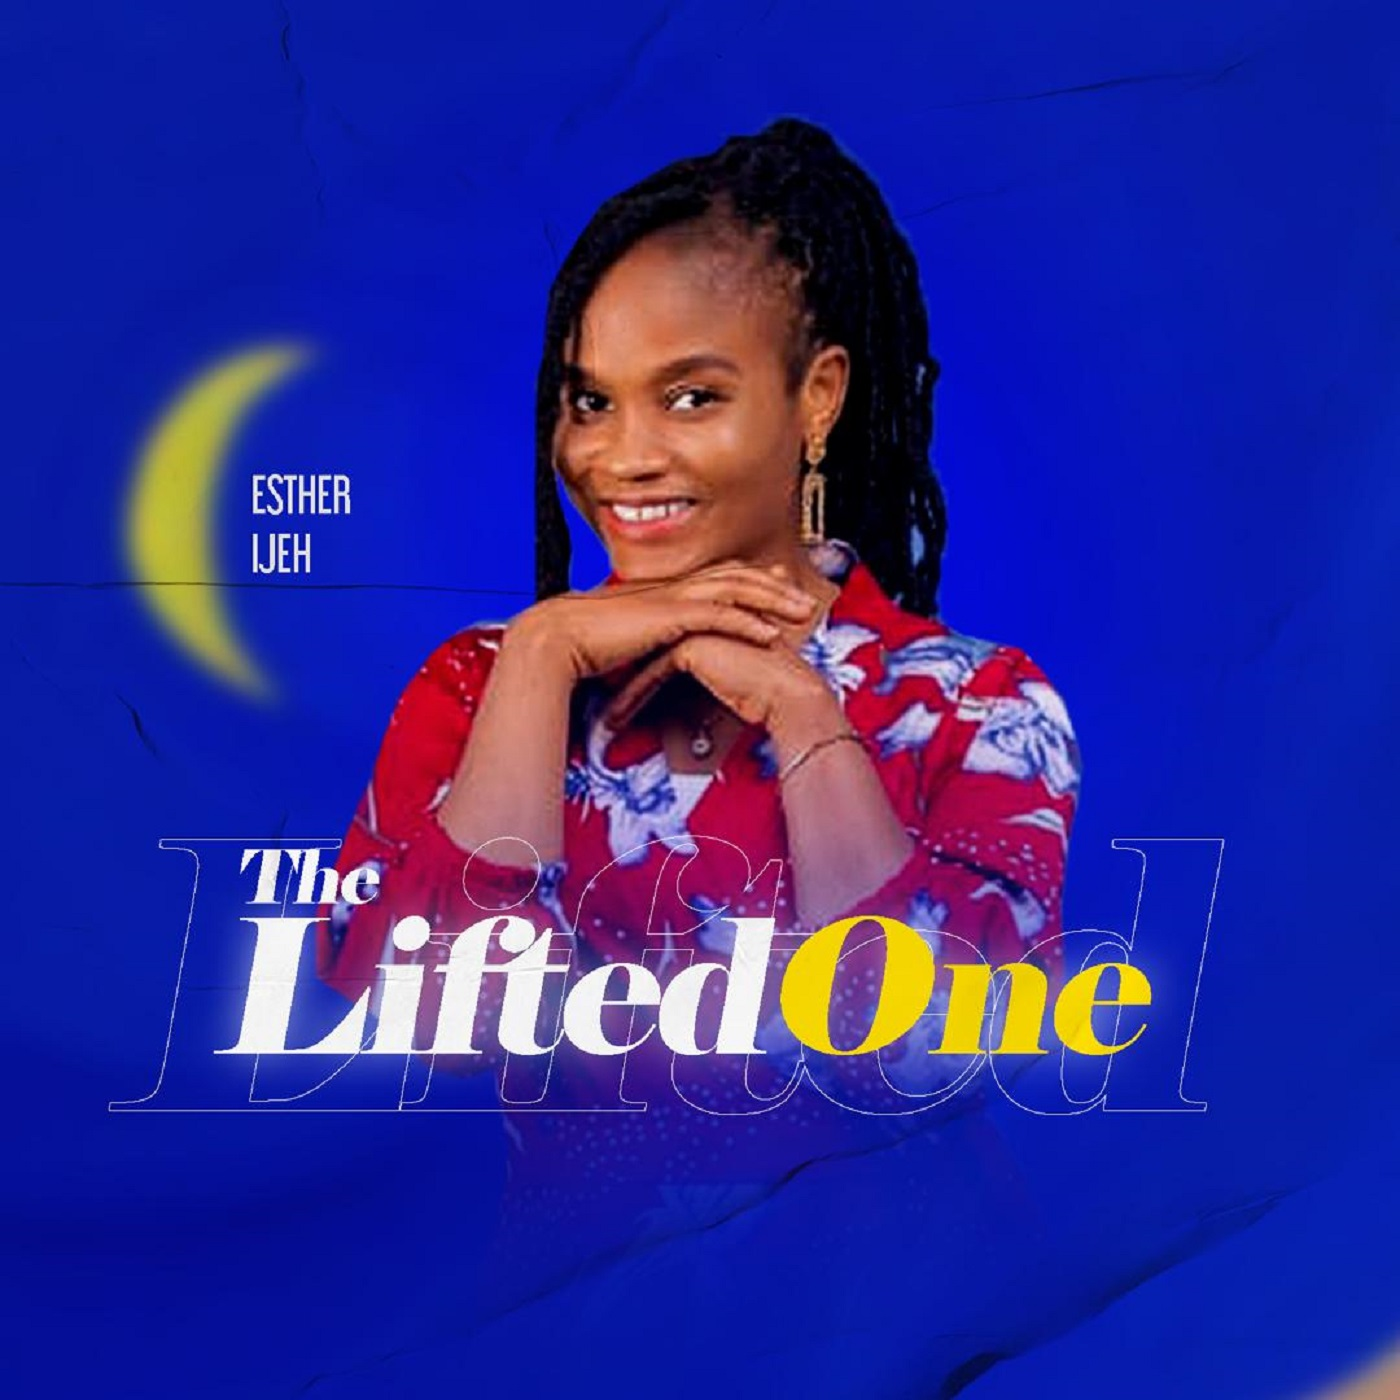 Esther Ijeh Inspirational Song The Lifted One